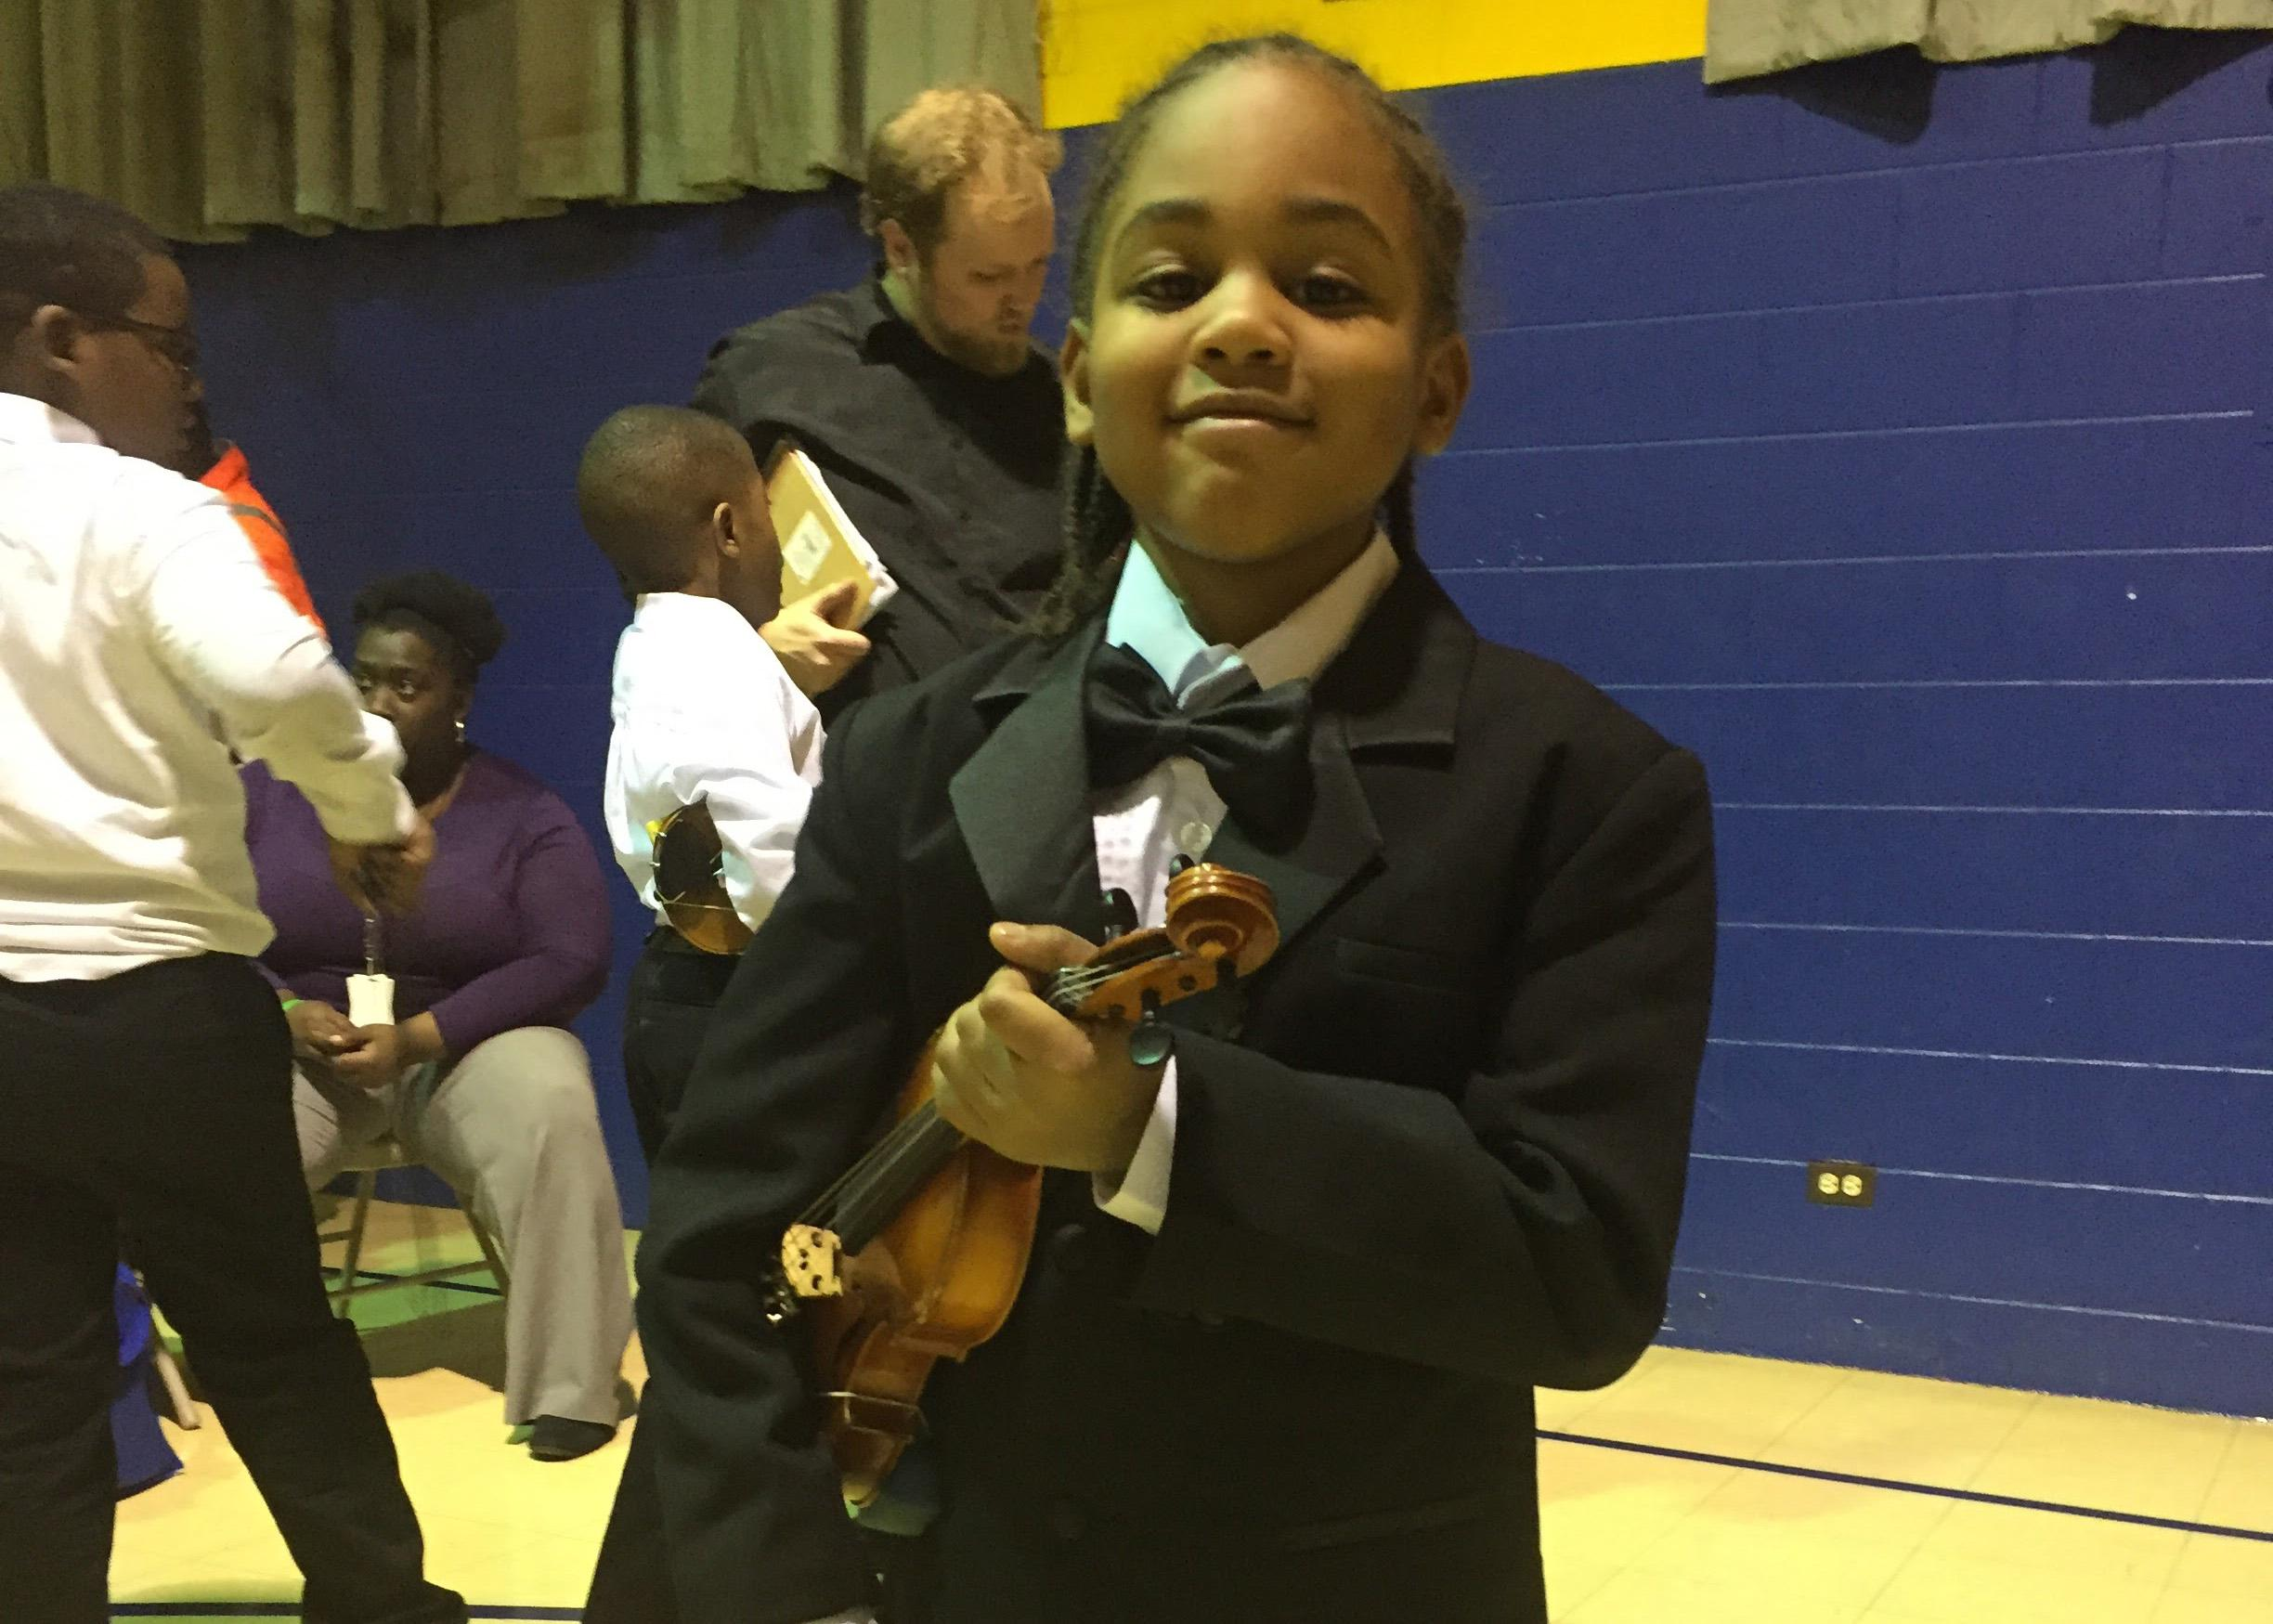 A student clutches his violin at a M.U.S.I.C. Inc performance. (Courtesy of Sarah Dupuis)